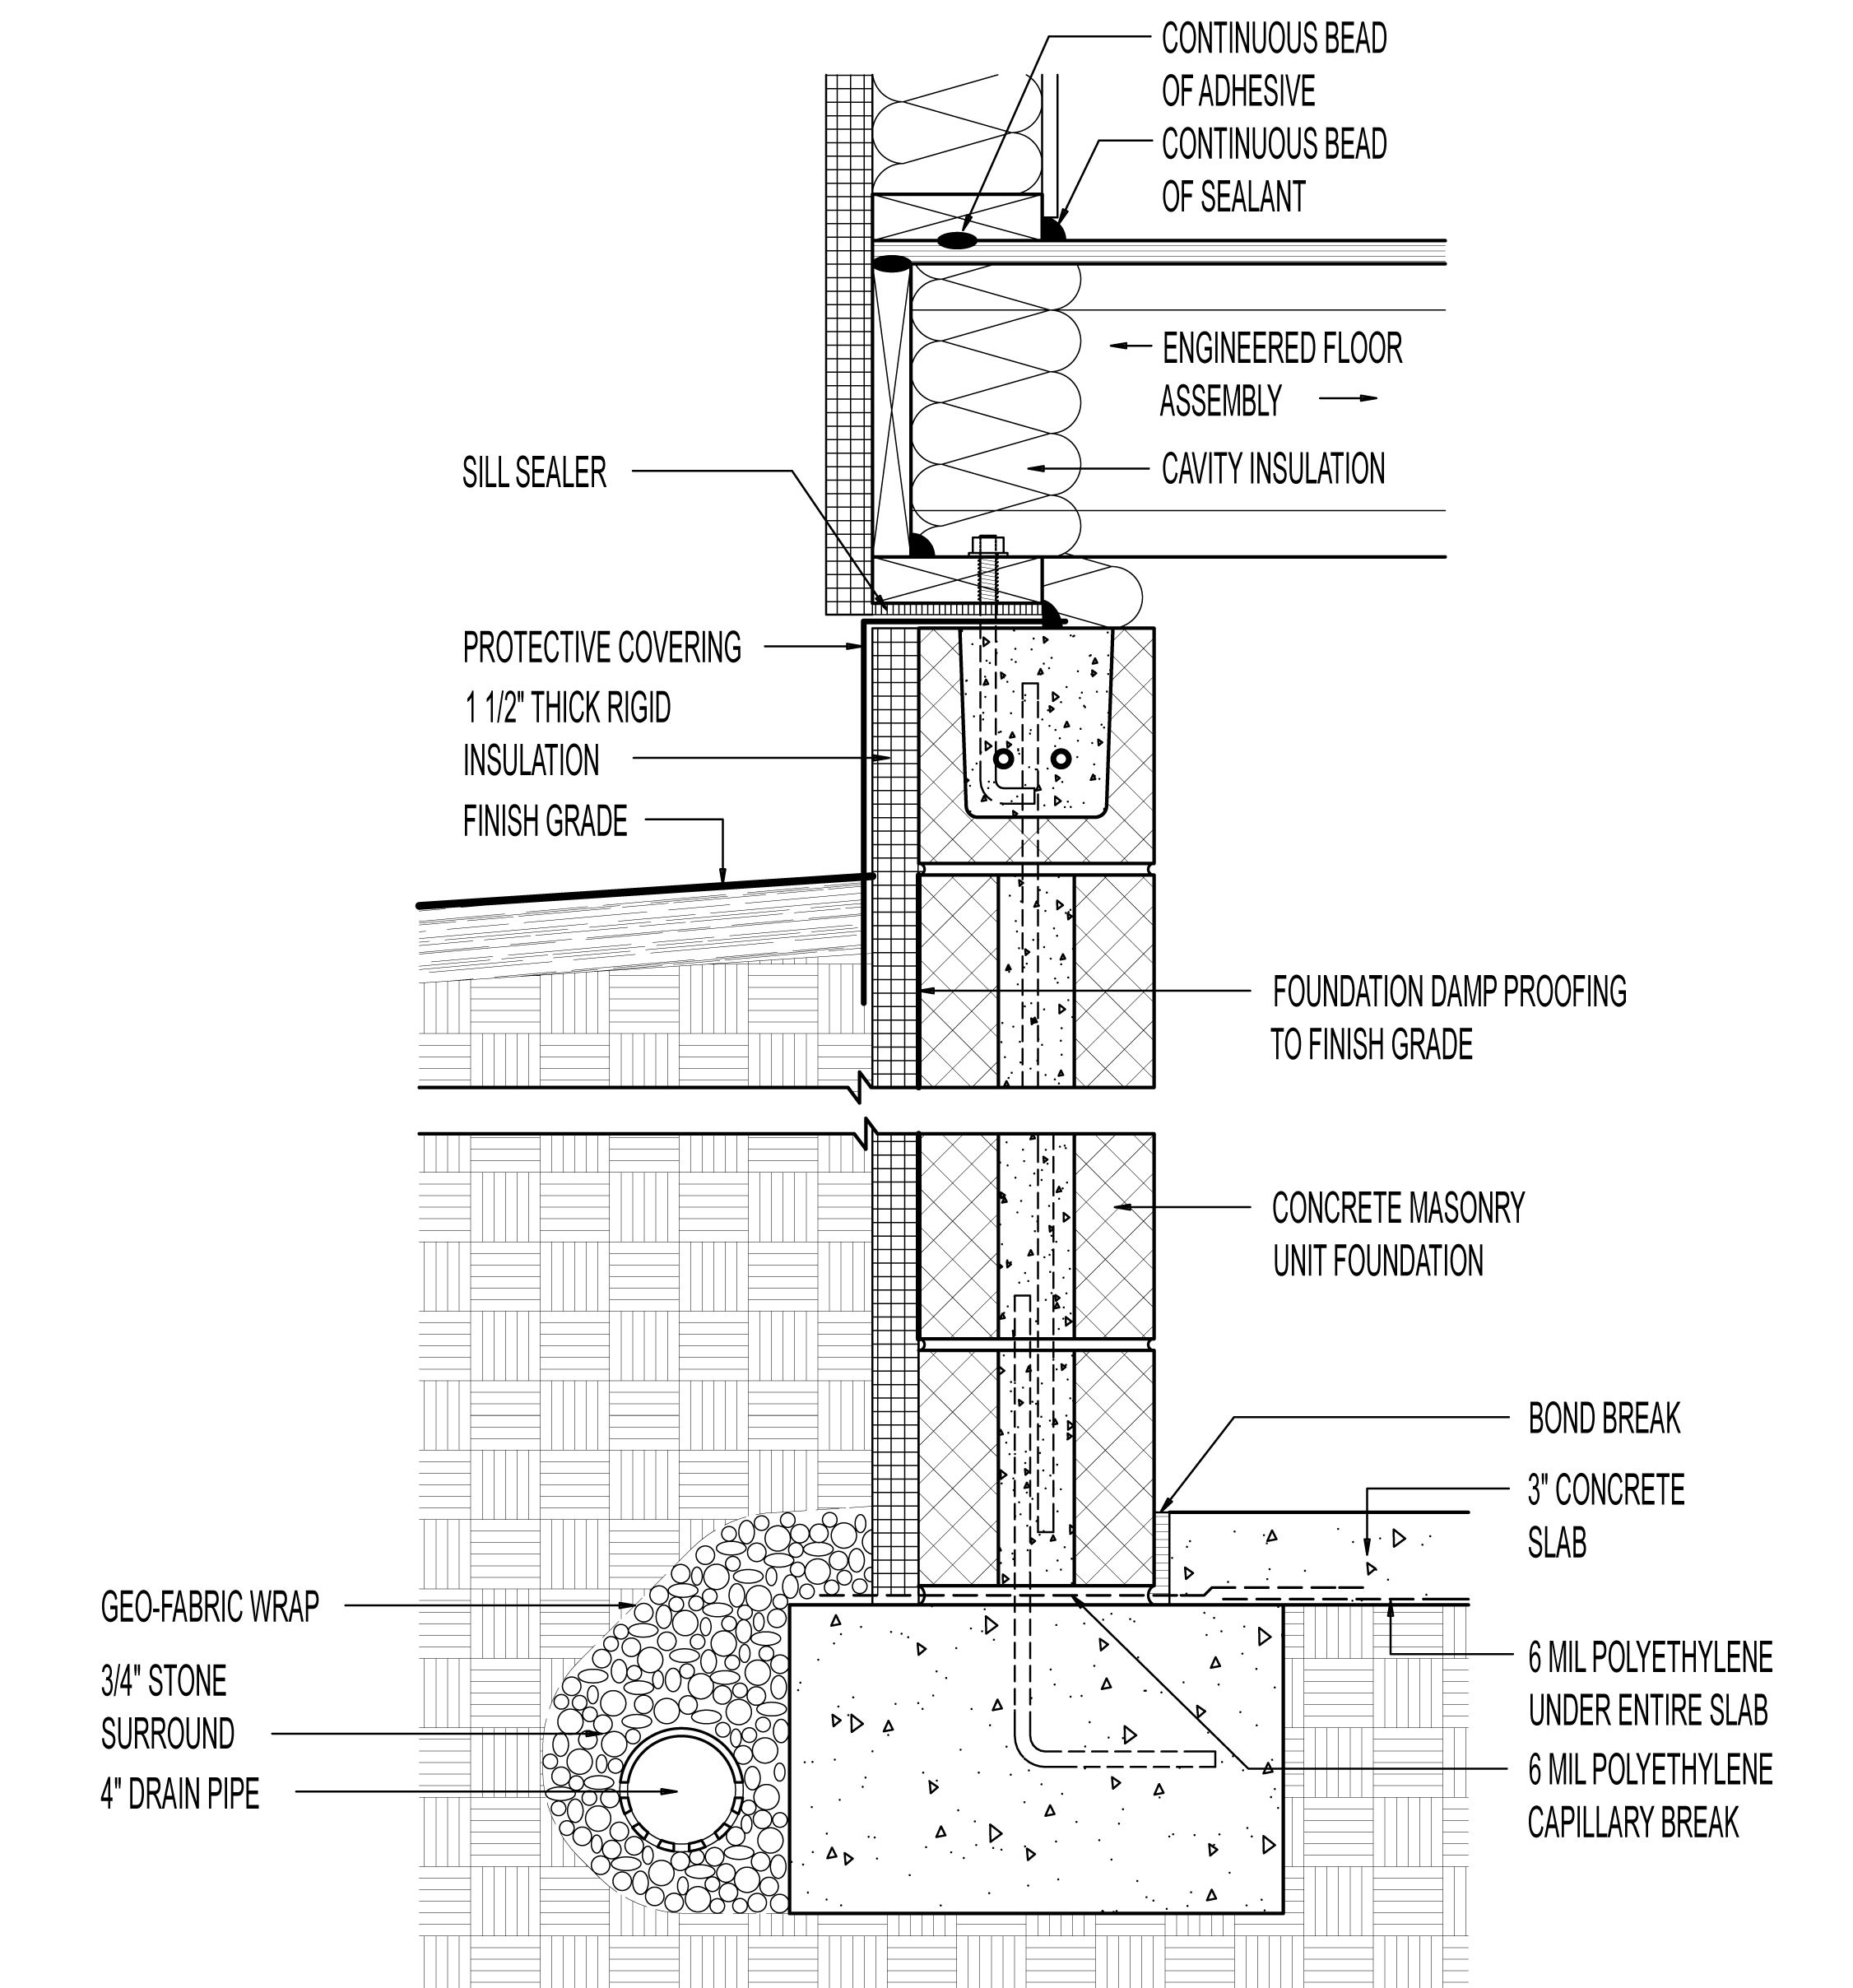 medium resolution of with the foundation wall at room temperature the footing acts as a thermal bridge that allows heat to flow from the concrete block wall to the soil